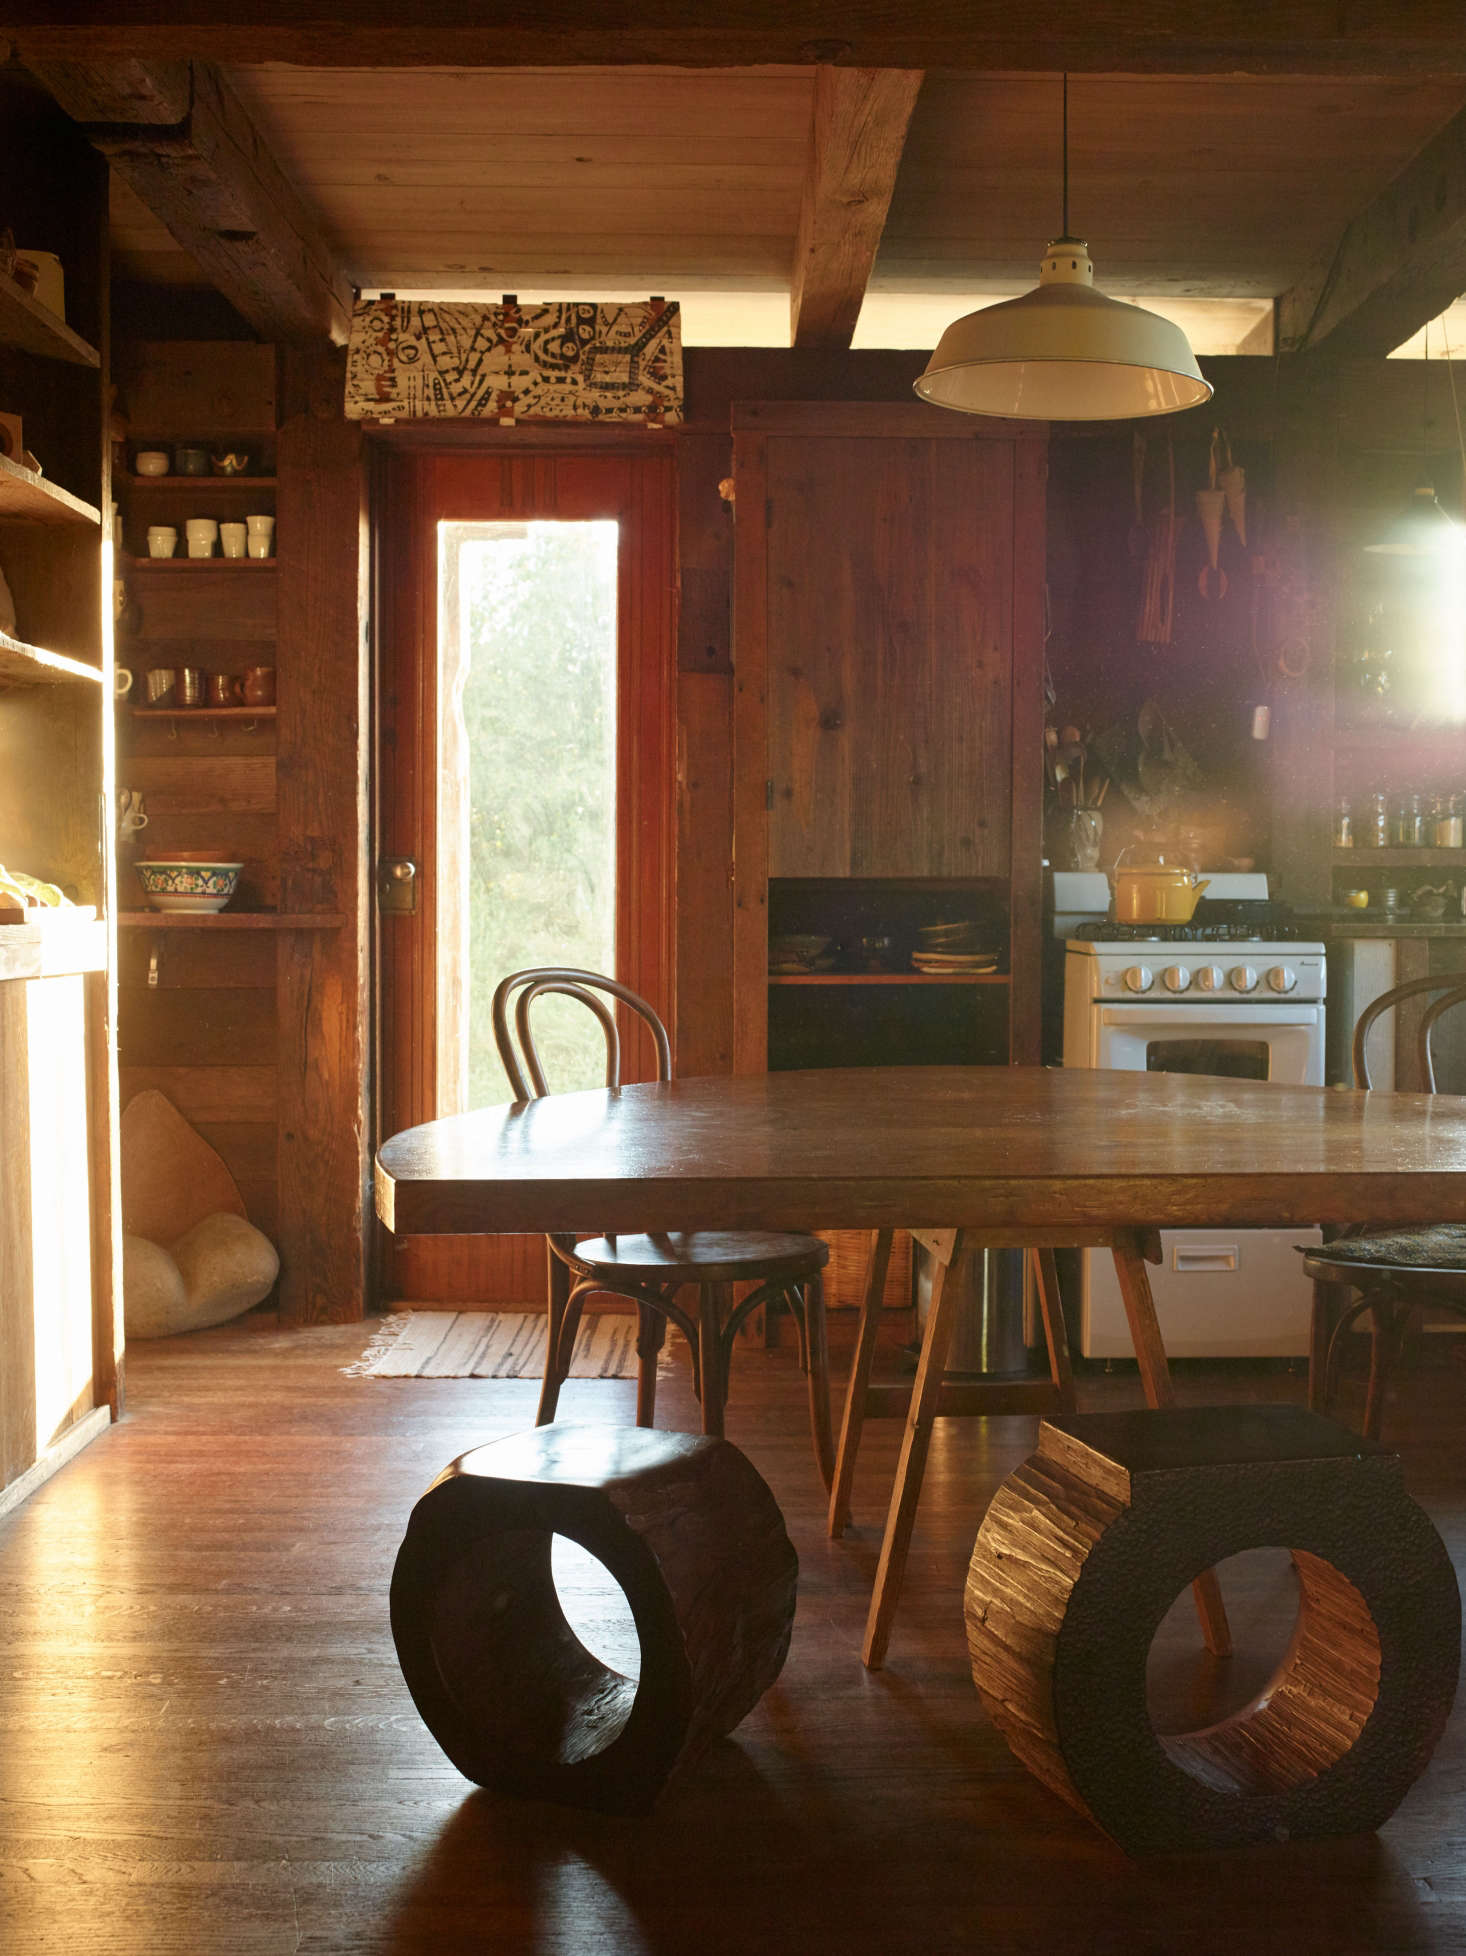 J. B.'s first wife, Nancy Waite, designed and made the kitchen's polygonal table with sawhorse supports. J. B. hollowed redwood chunks with a chainsaw to make the stools. Above the doorway hangs a Blunk abstract artwork, painted on redwood bark.